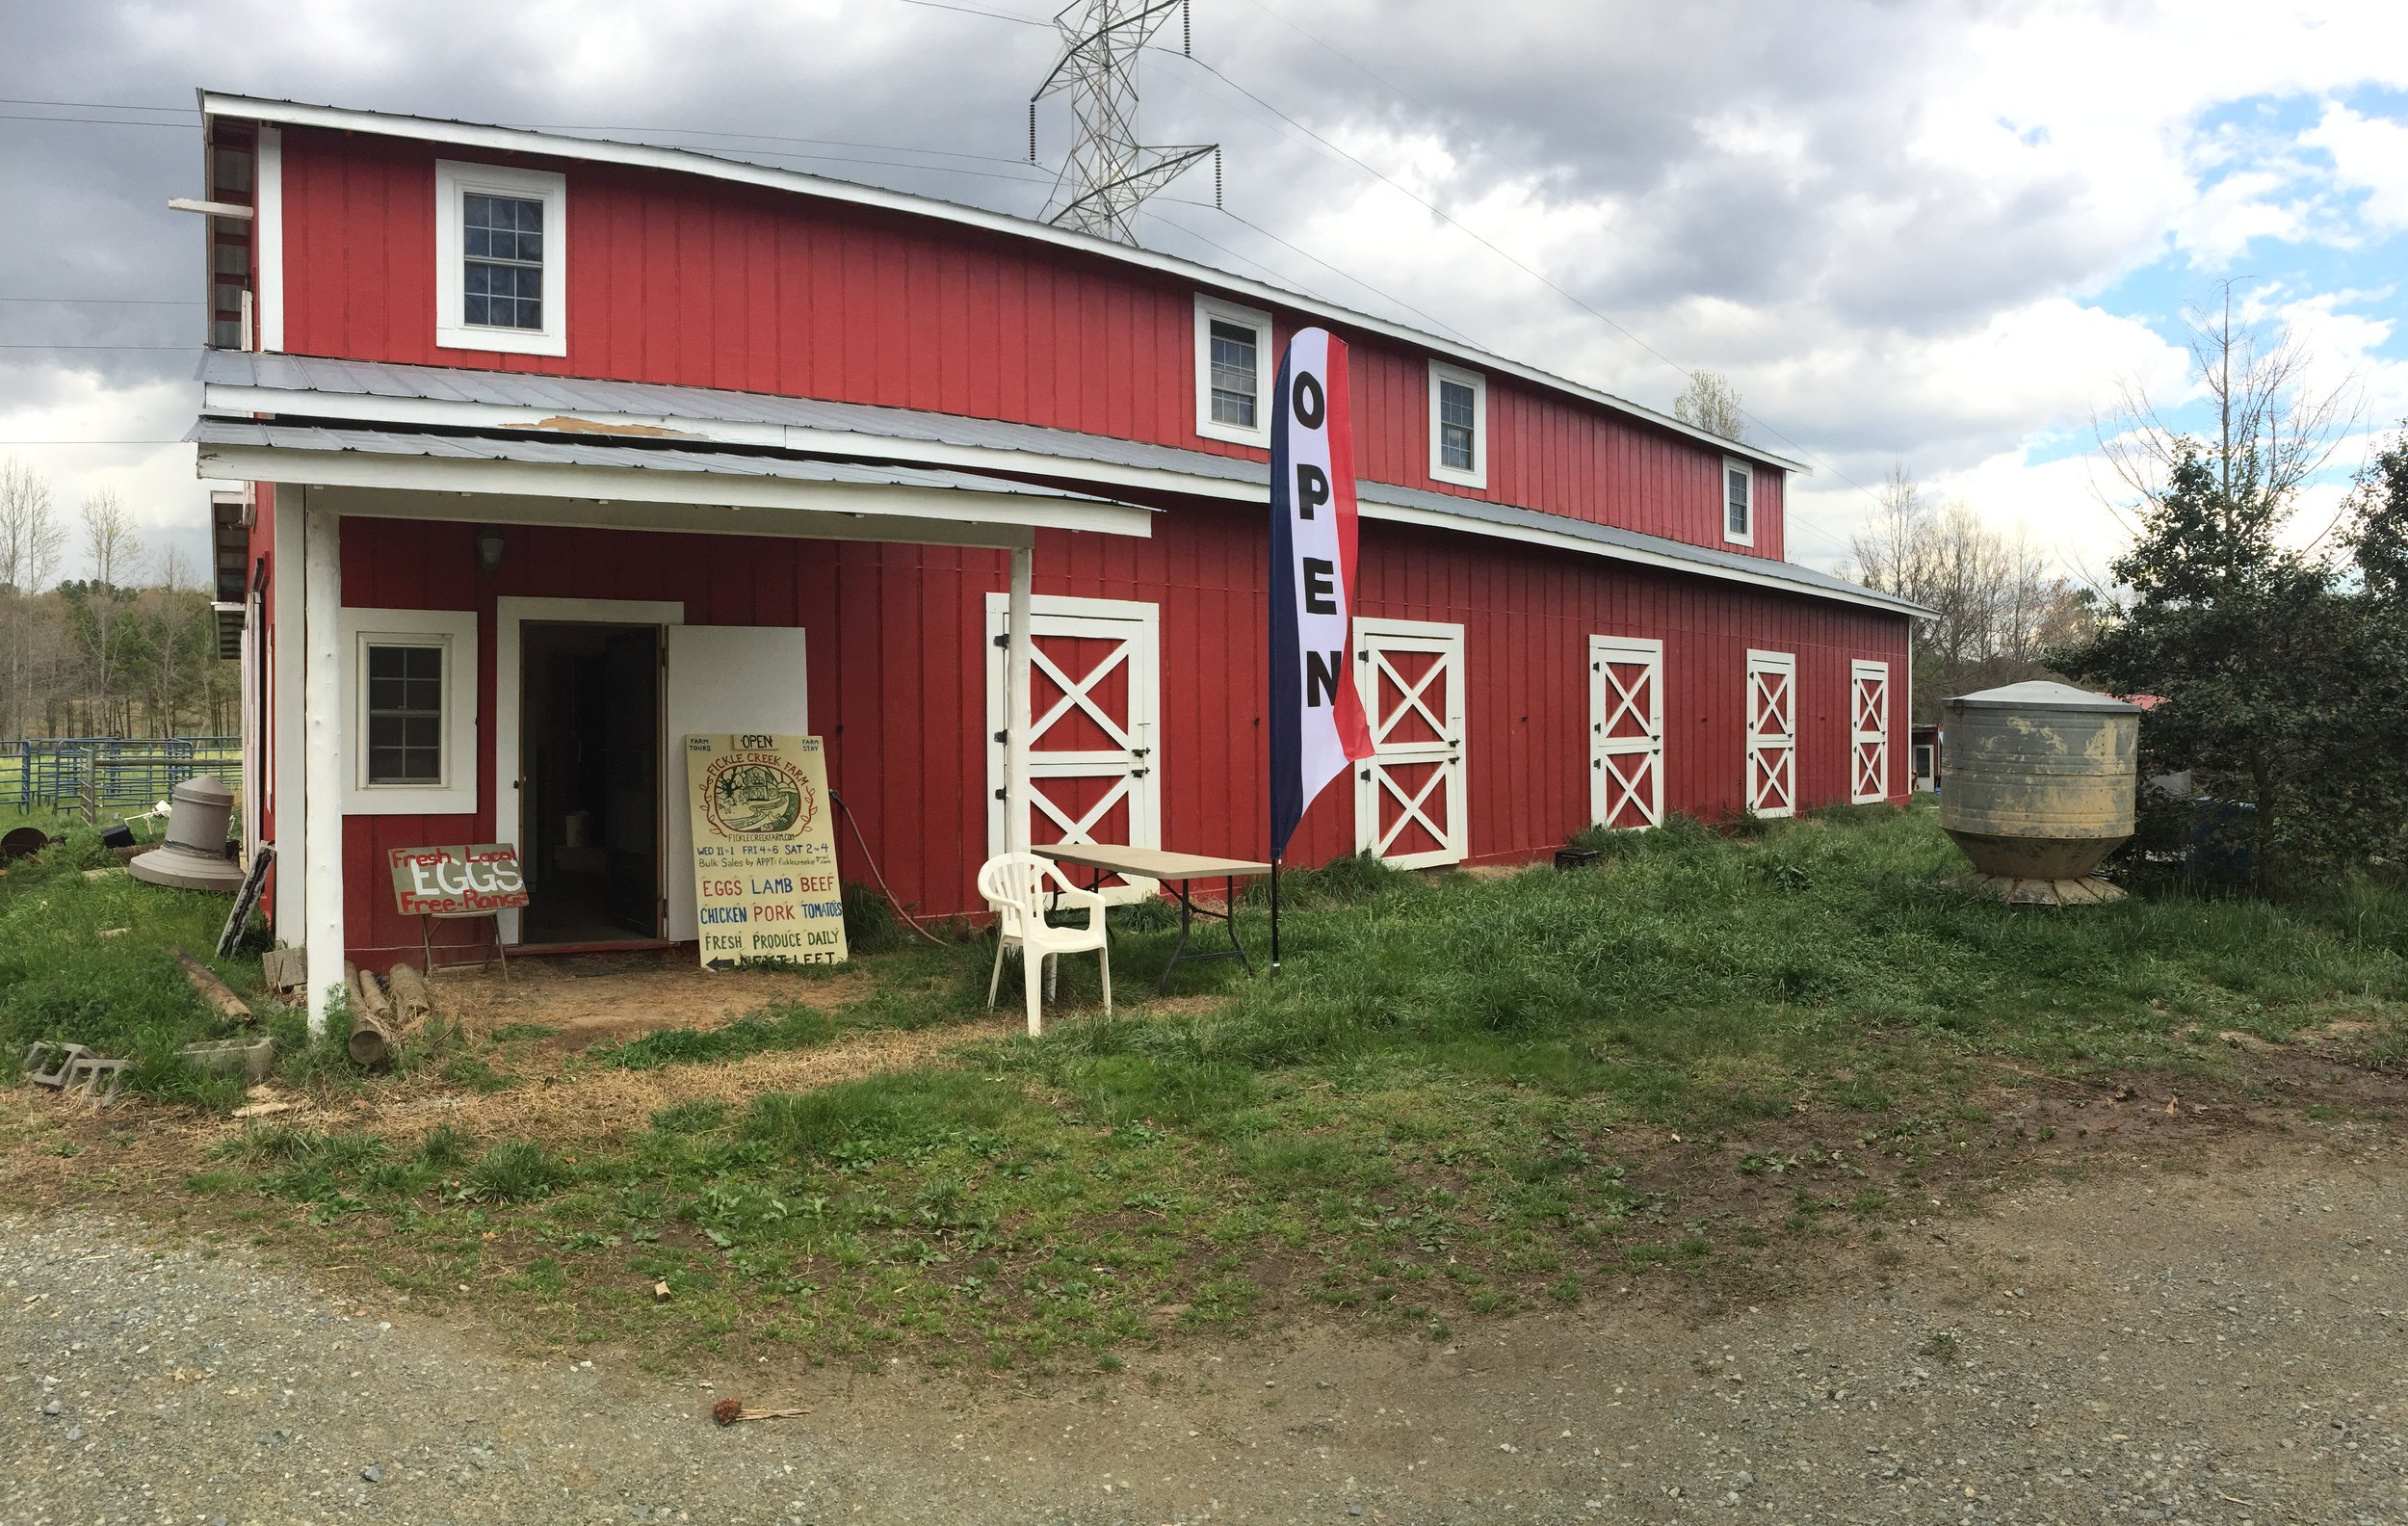 Fickle Creek Farm open during slect hours on Wed, Fri and Sat